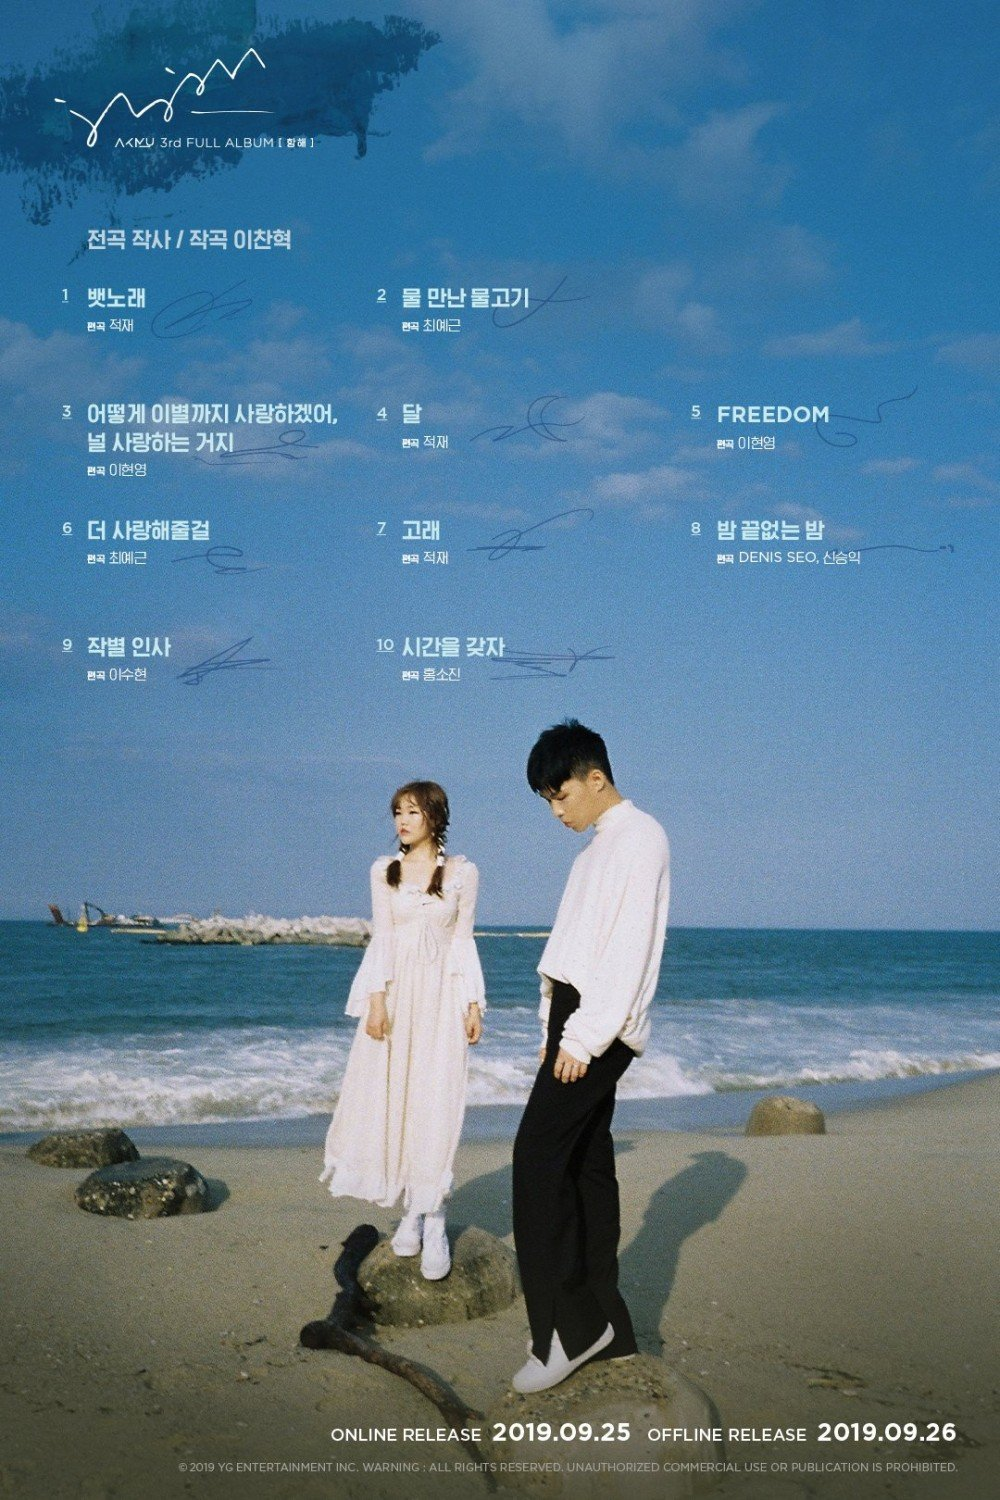 Image result for akmu sailing album